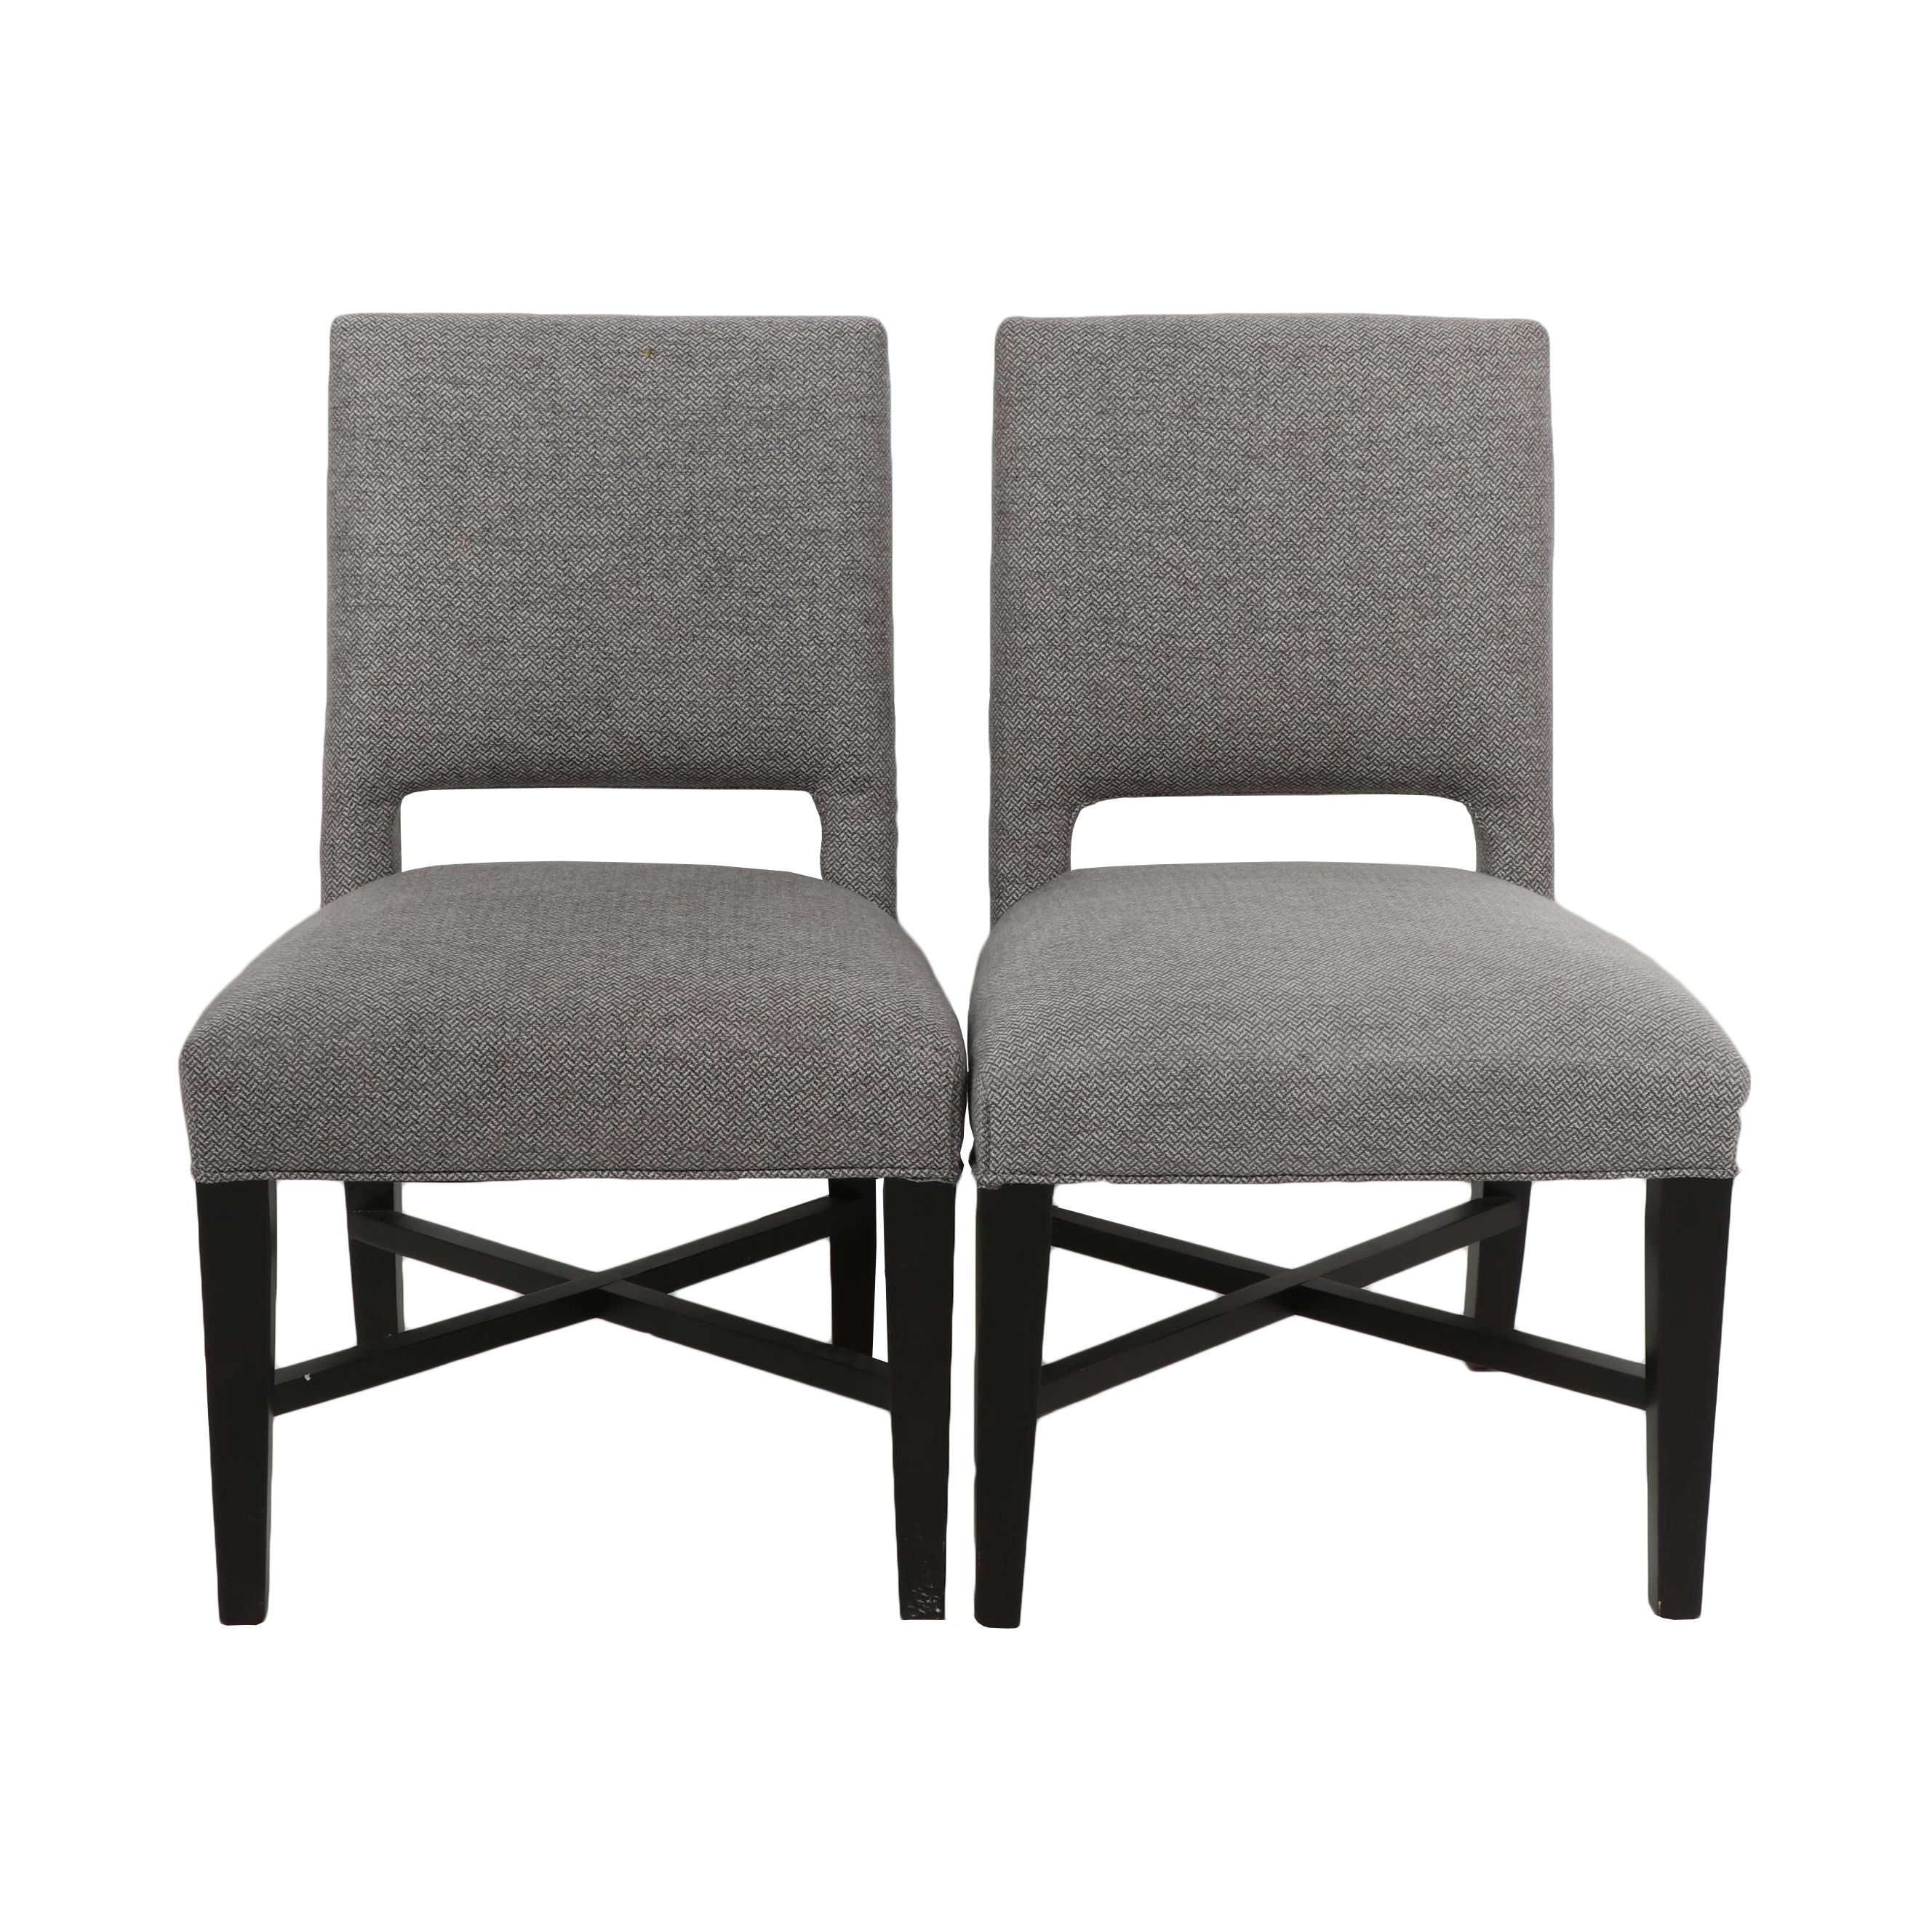 Pair of Dining Chairs with Dark Brown Wooden Legs and Grey Tweed Upholstery